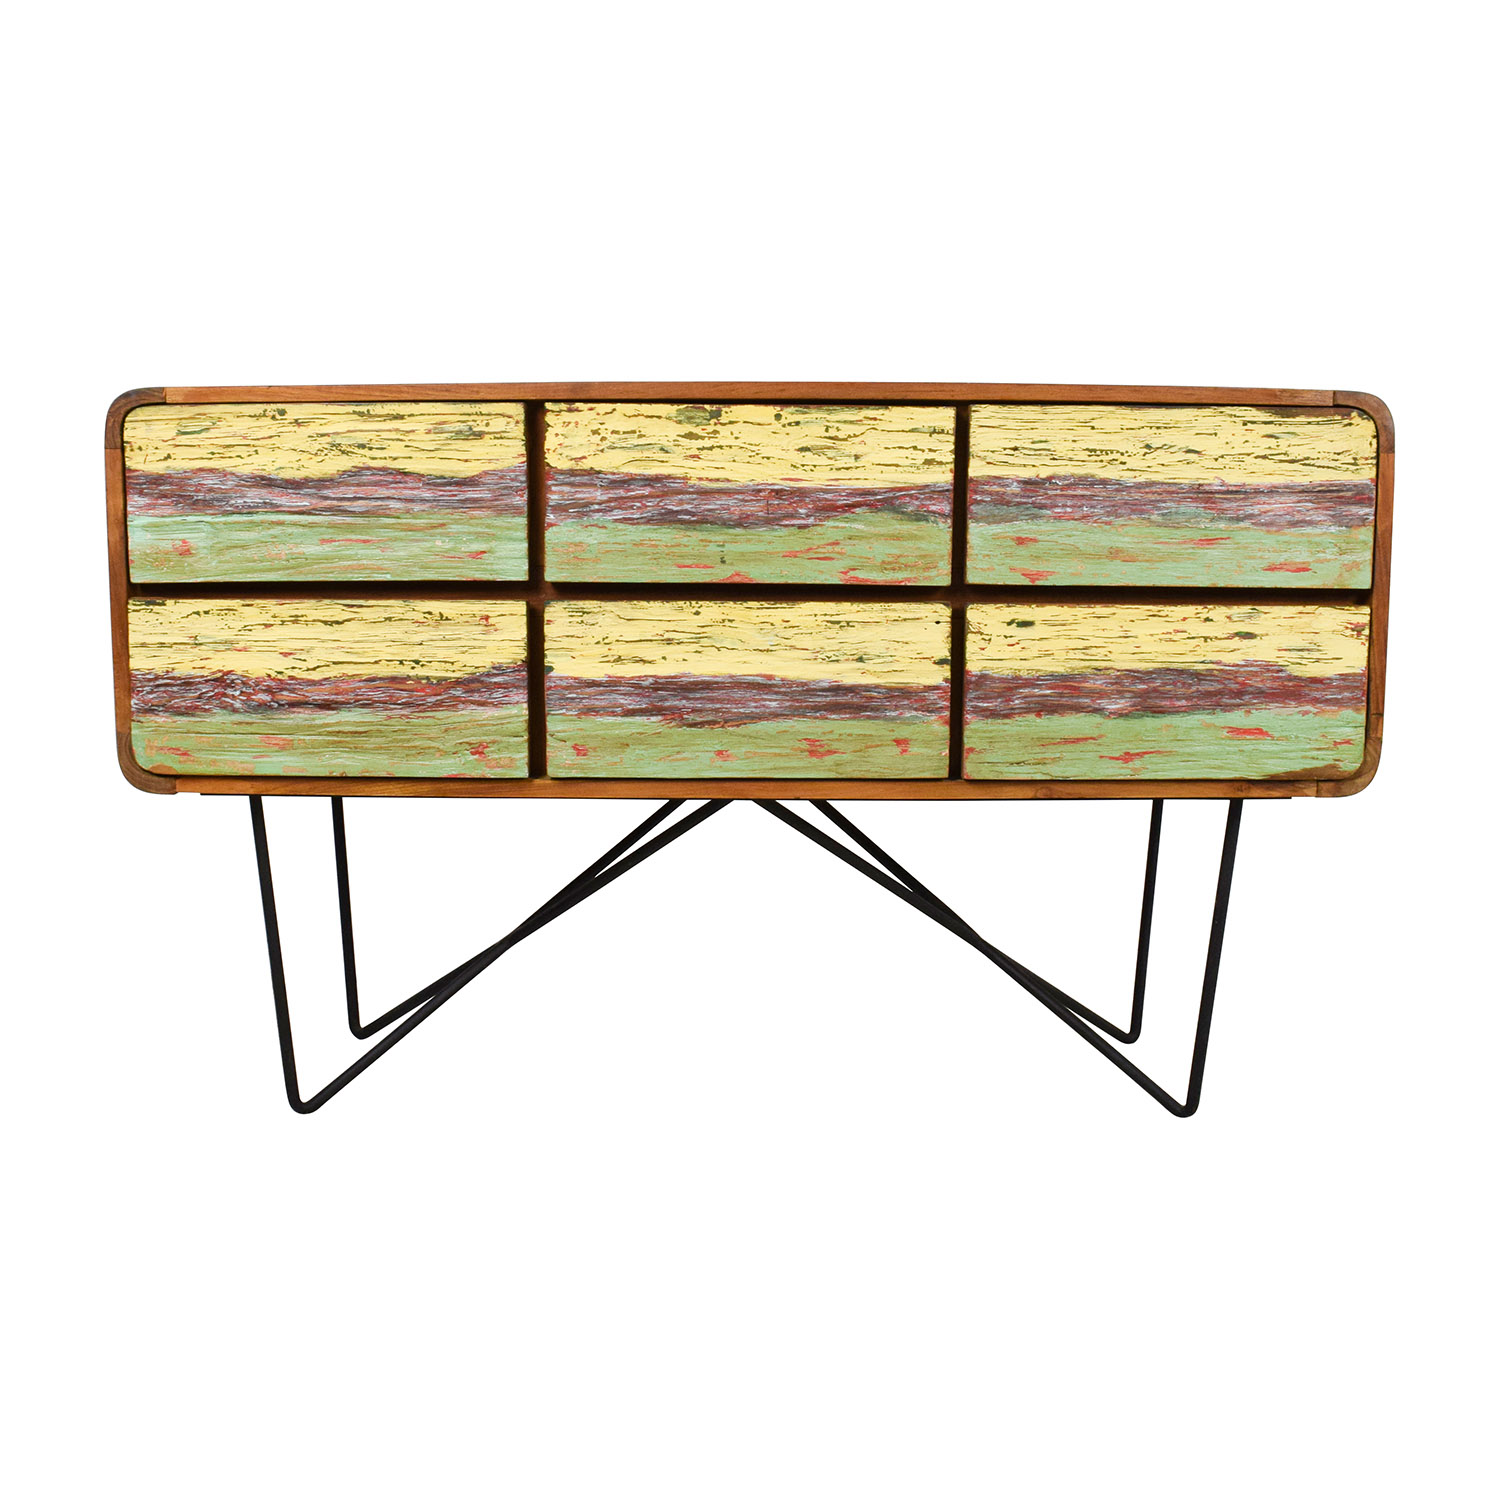 Anthropologie Anthropologie Walnut with Metal Base Dresser Brown yellow and green